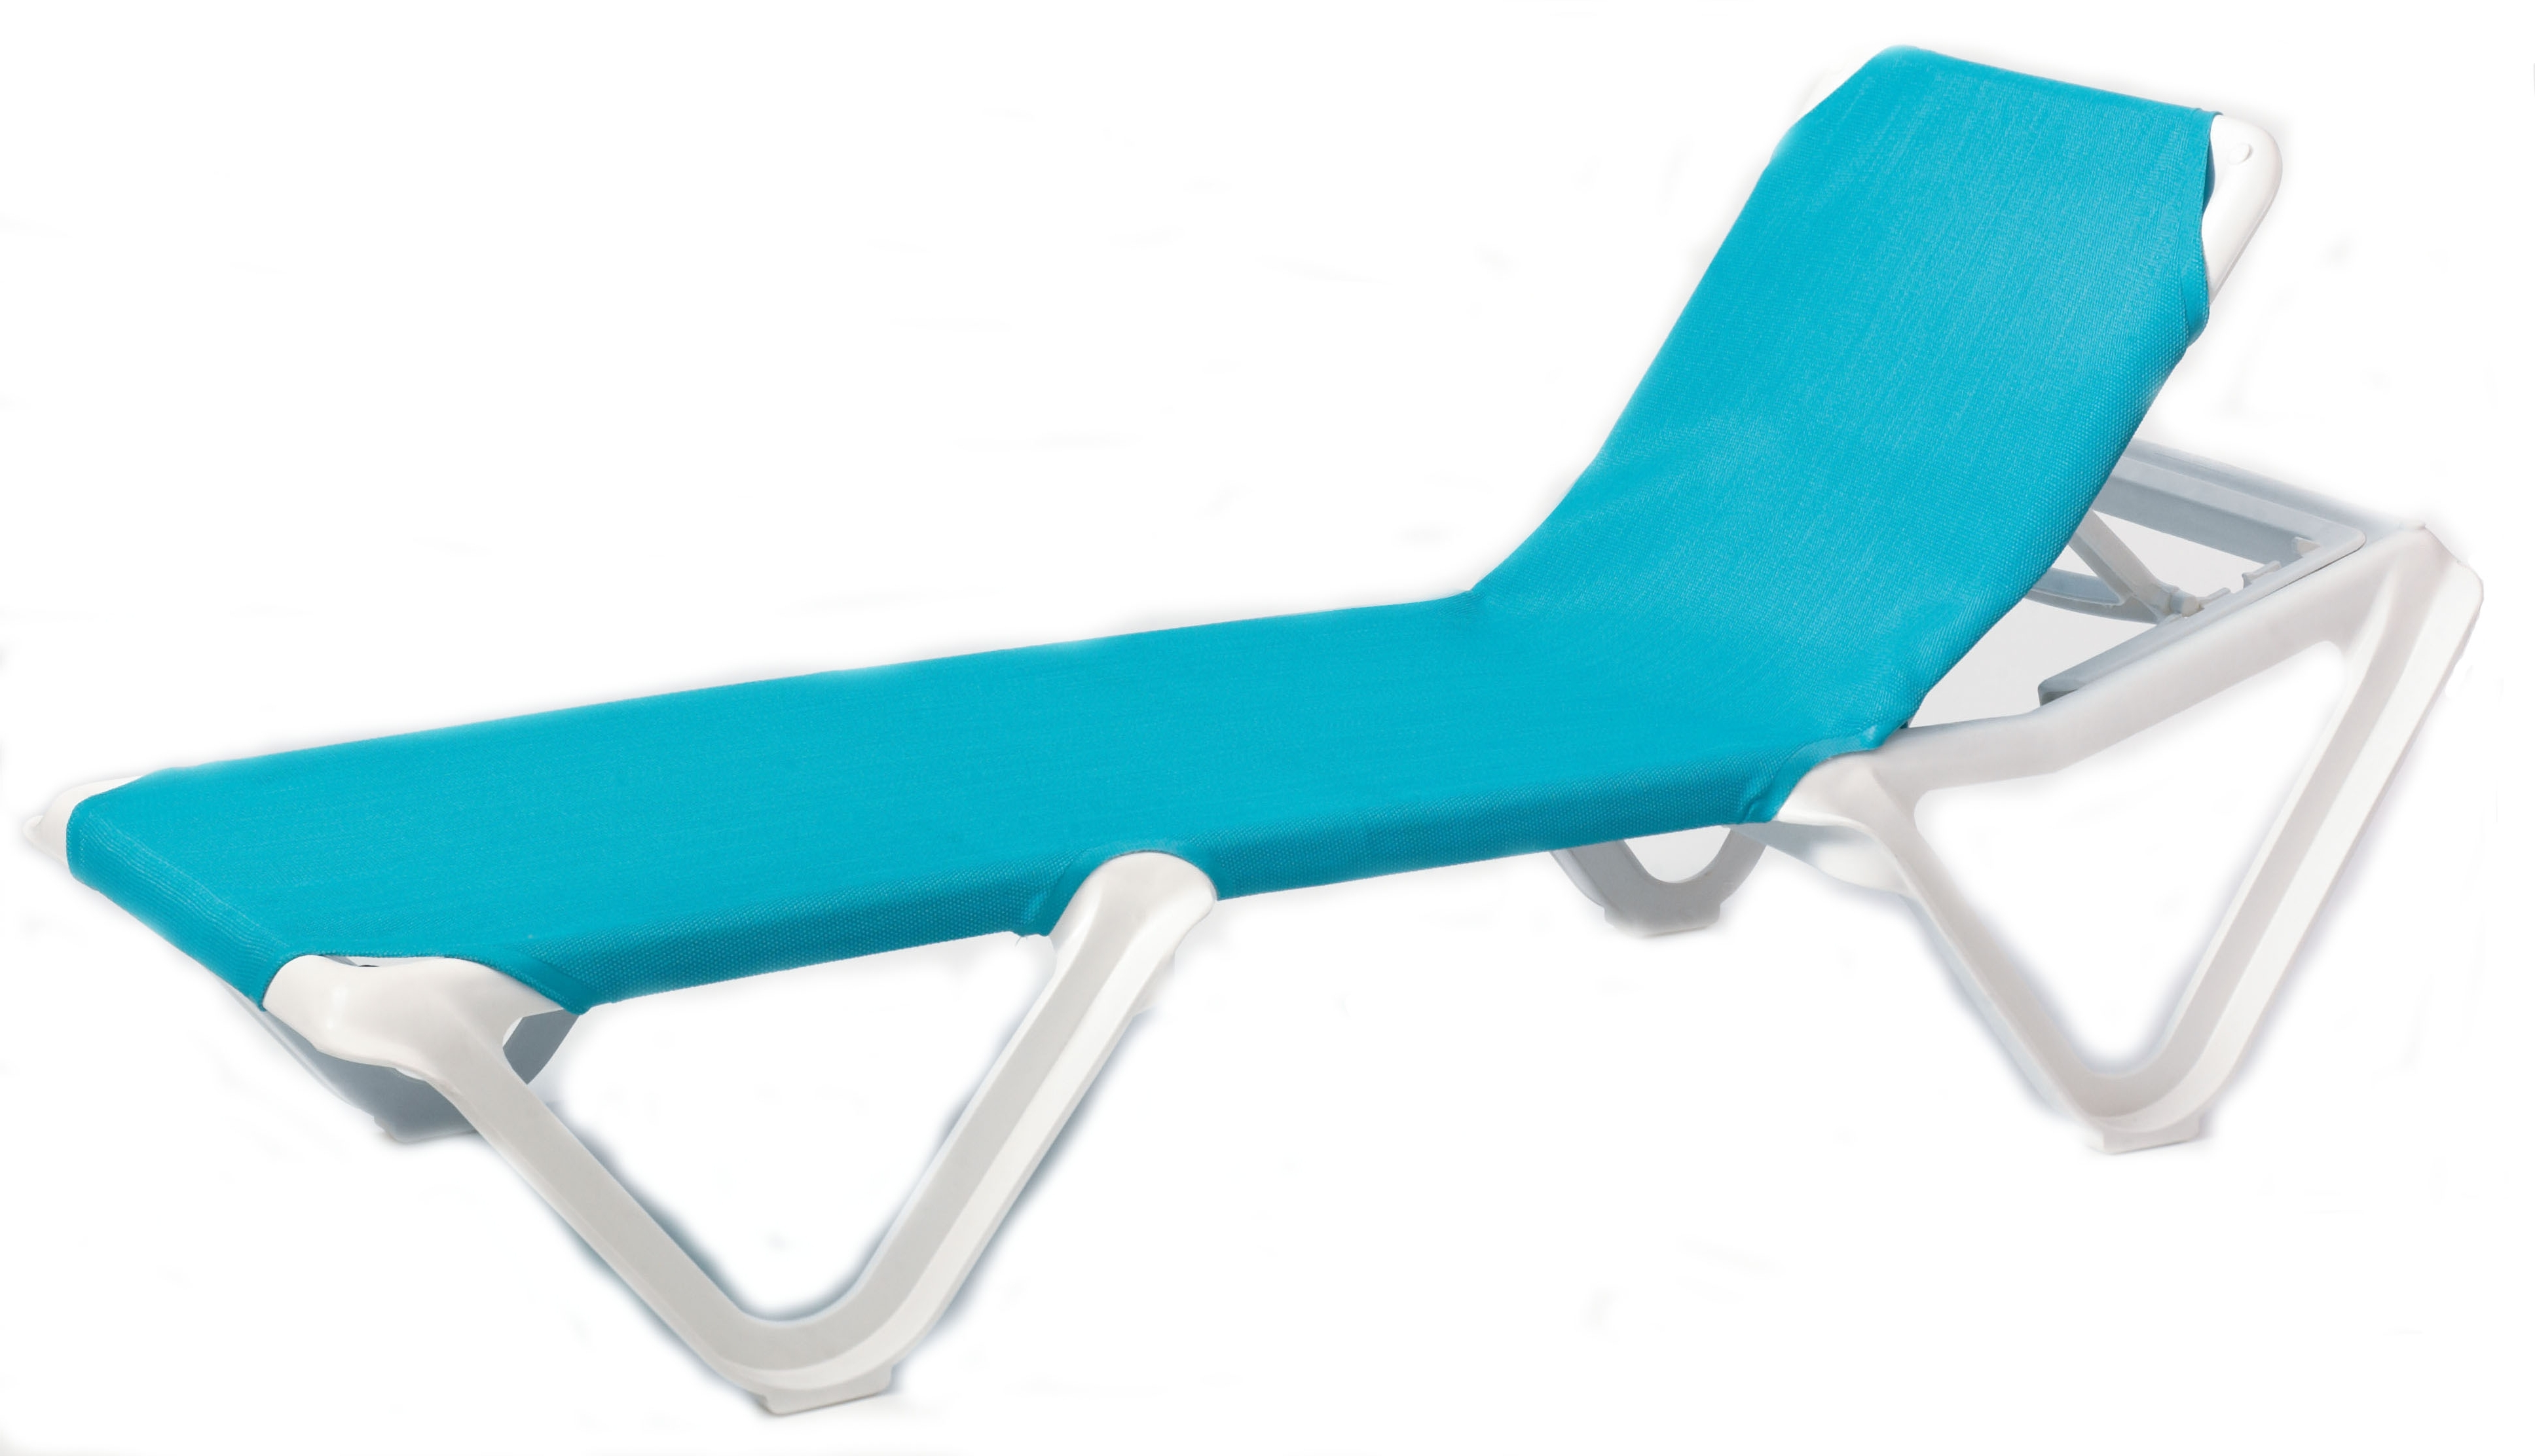 Enjoy The Sunshine Well Through Pool Chaise Lounge Chairs Regarding Fashionable Outdoor Chaise Lounge Chairs Under $ (View 8 of 15)